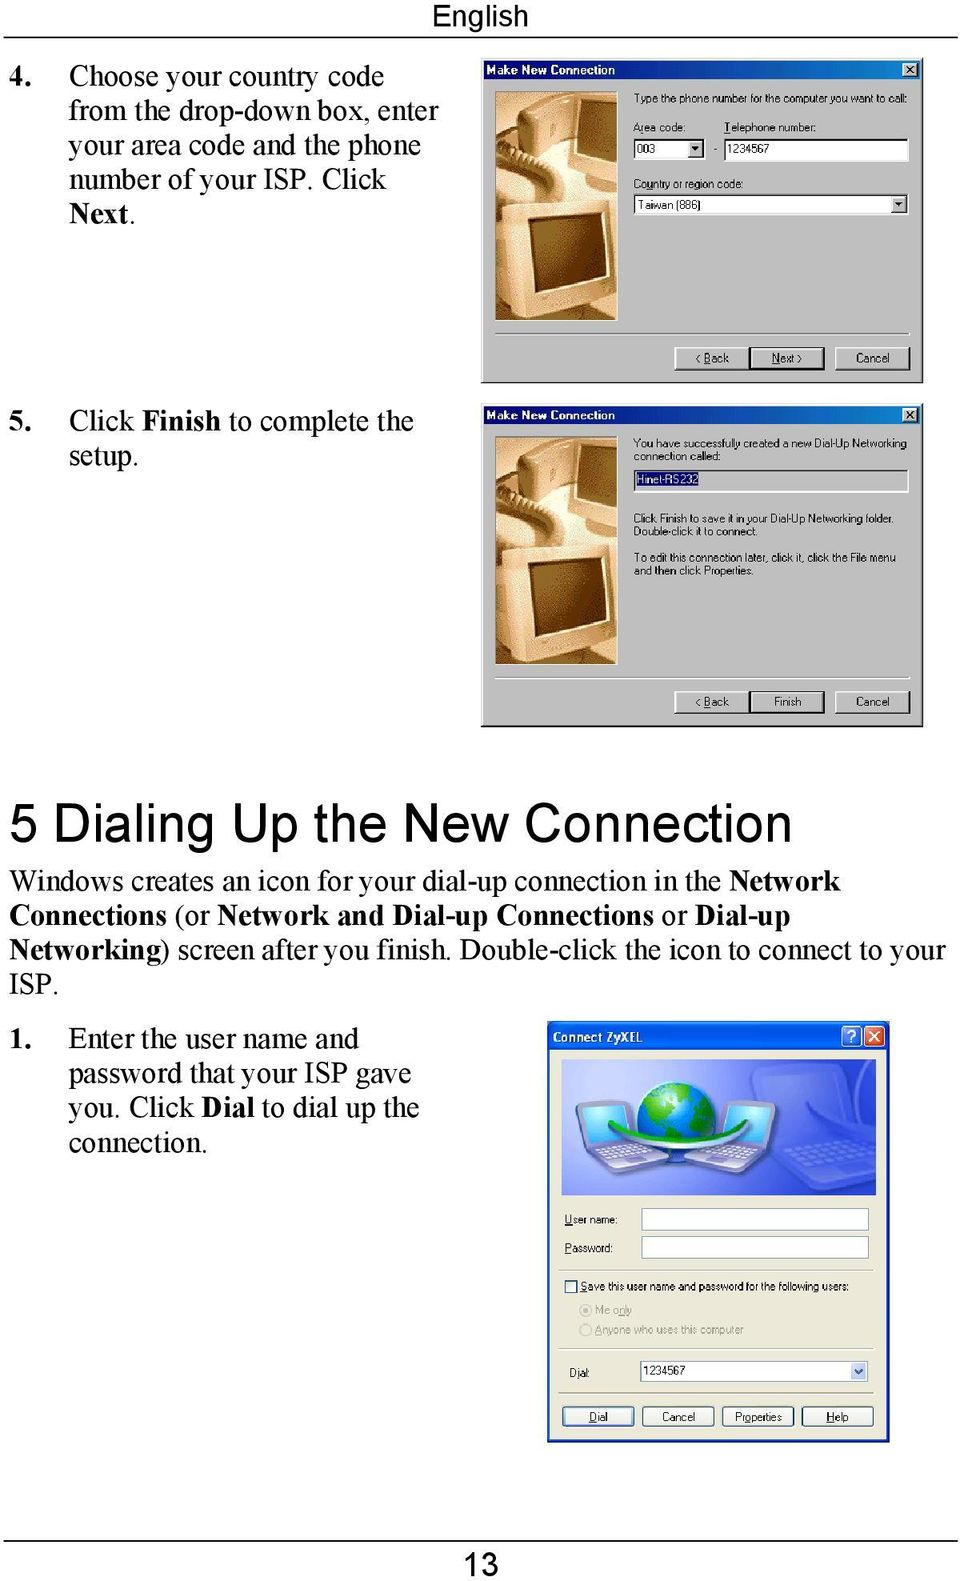 5 Dialing Up the New Connection Windows creates an icon for your dial-up connection in the Network Connections (or Network and